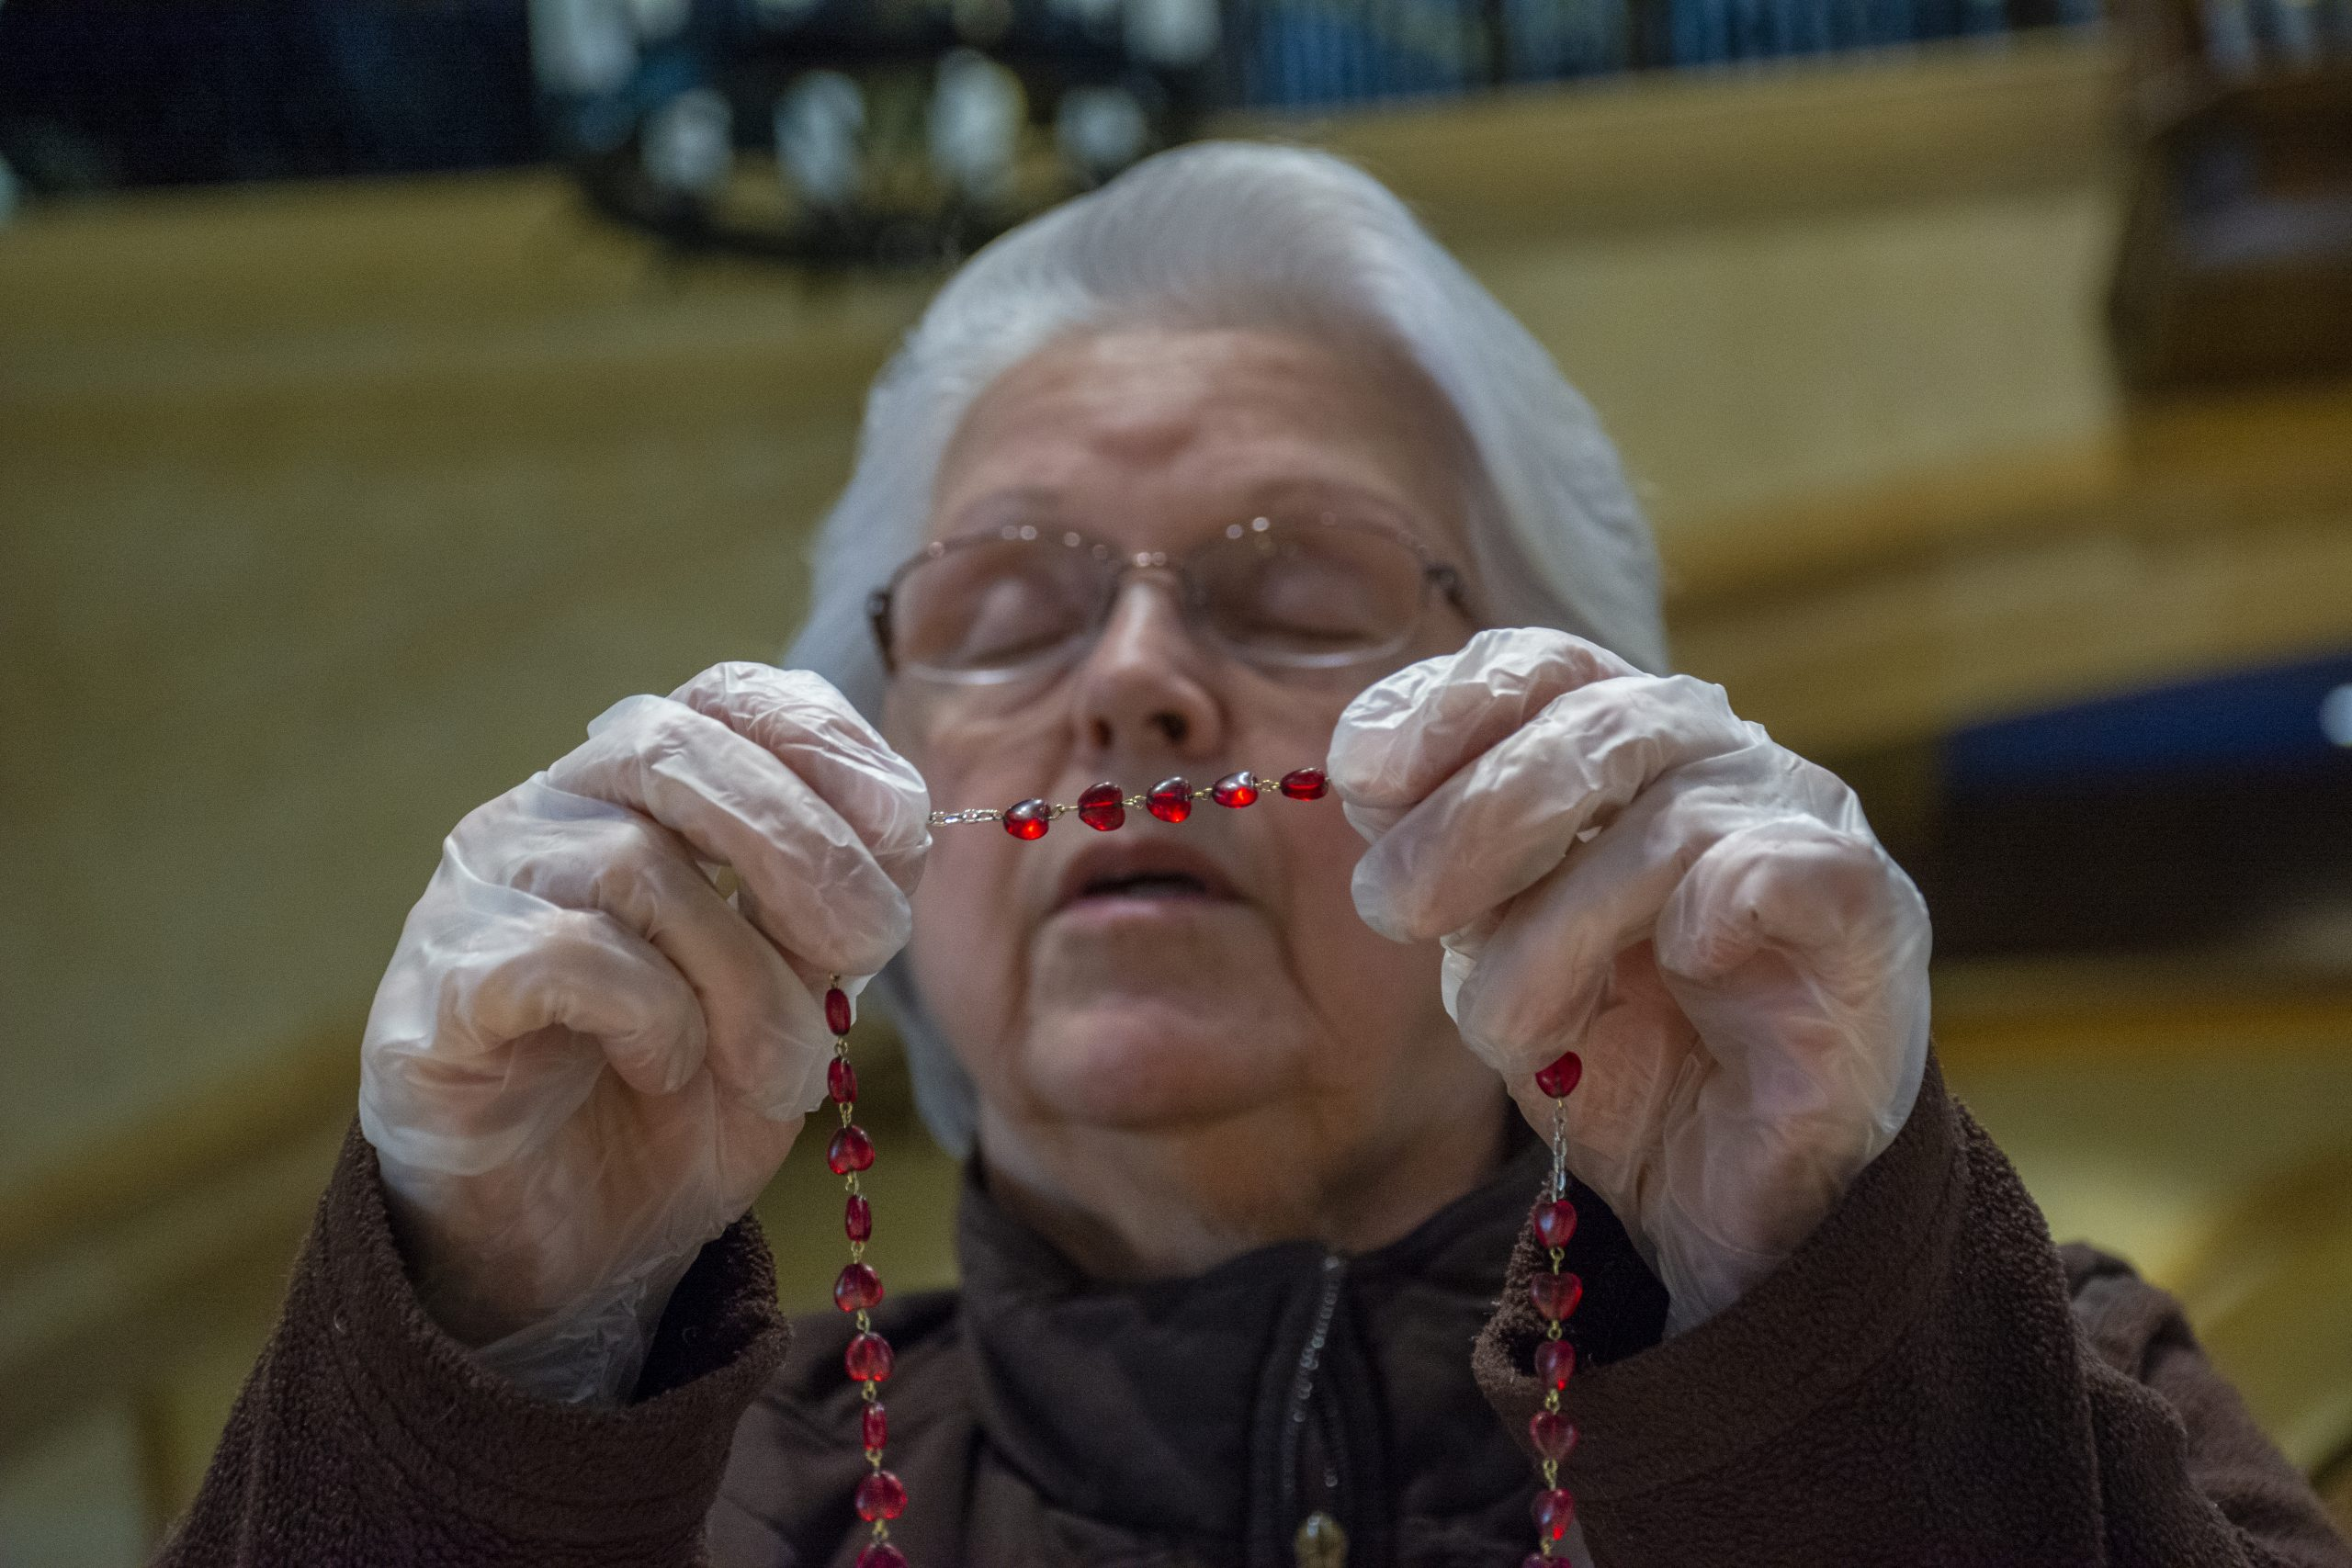 Sherry Gardiner wears protective gloves as she offers prayers at St. Paul the Apostle Catholic Church in Westerville, Ohio. Catholic churches in Ohio closed masses to the public in fear of spreading the coronavirus to parishioners. The church is open during the afternoon for parishioners. My Final Photo for March 17, 2020.